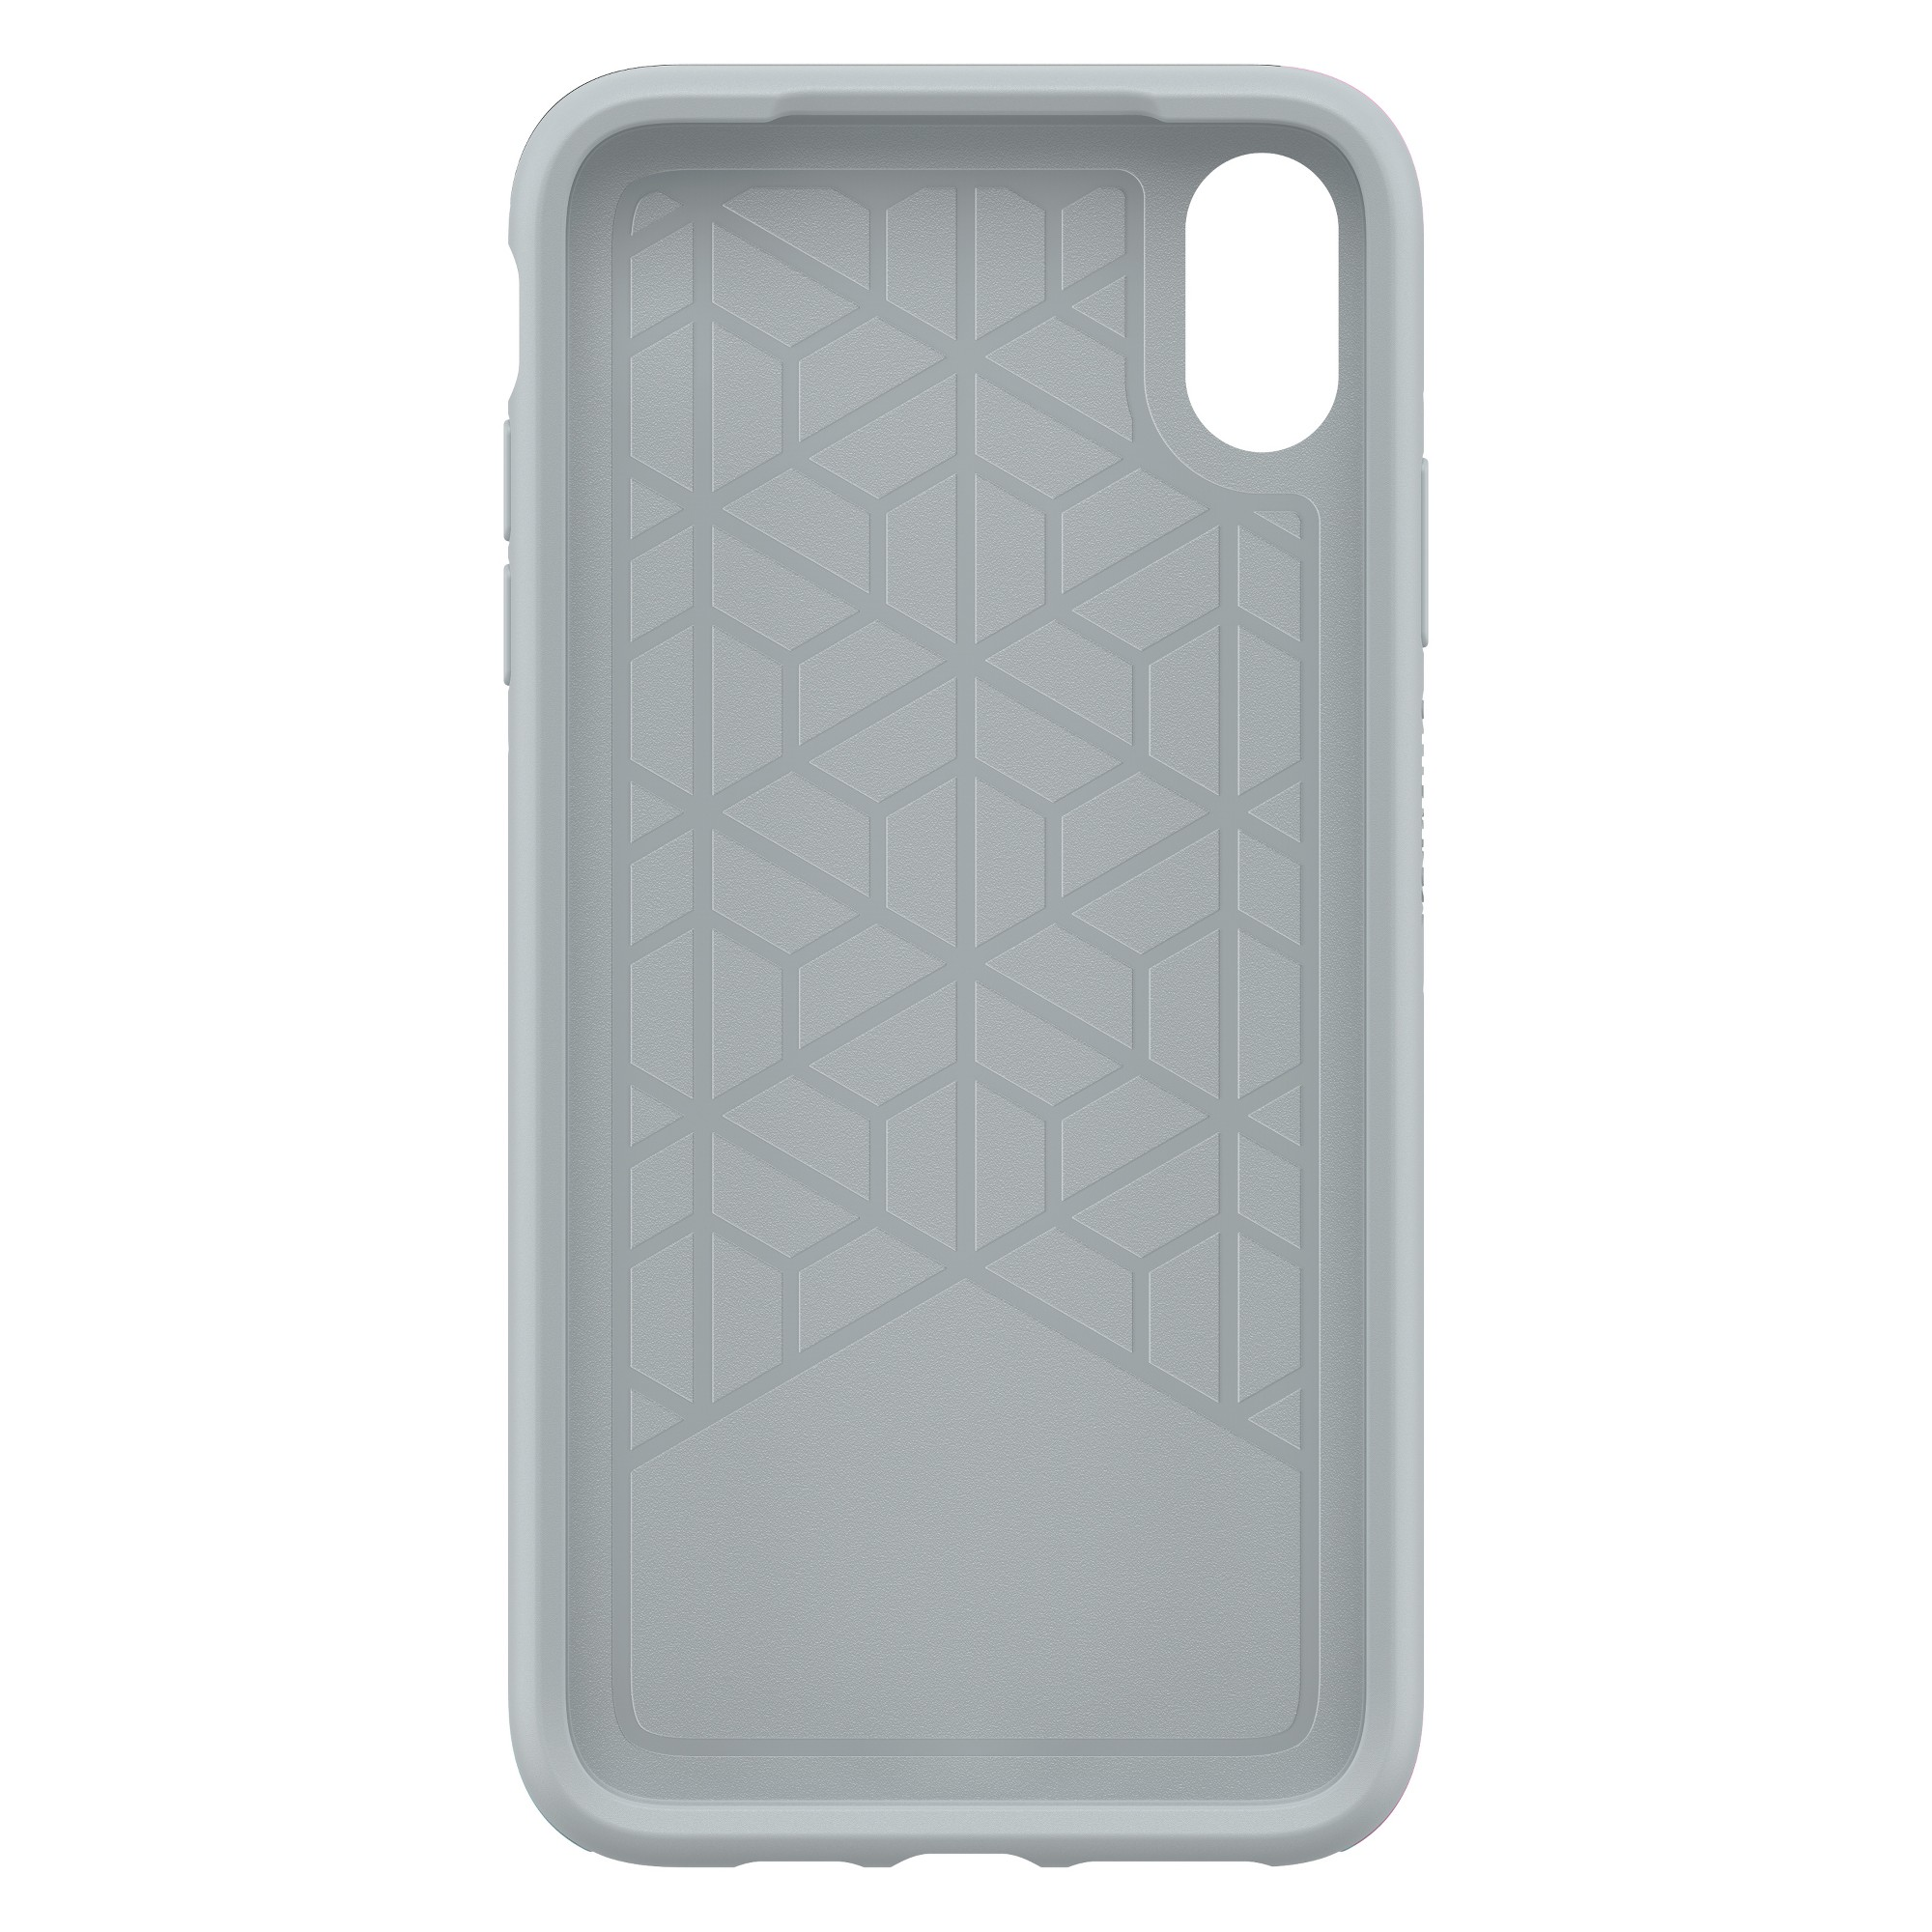 Iphone 6s plus case diy sweepstakes